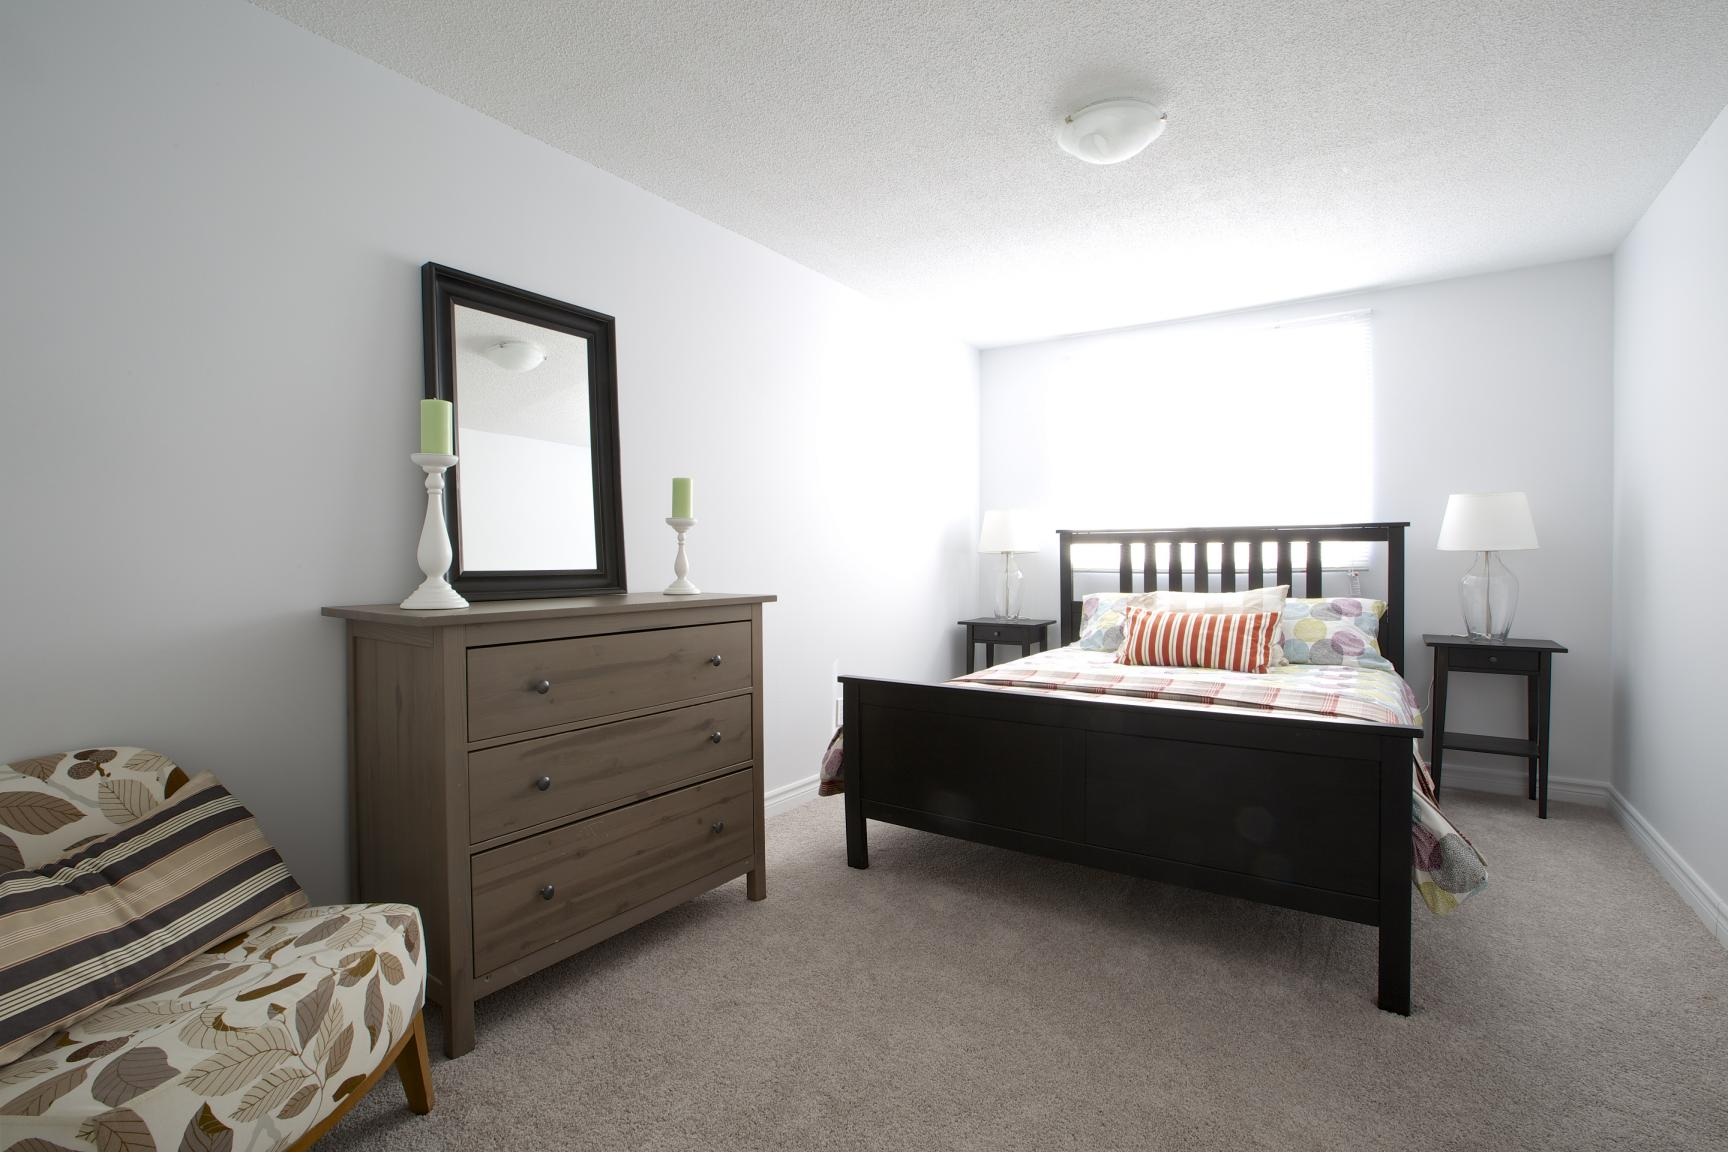 Bedroom Furniture Kitchener 278 282 Kingswood Drive Kitchener On Apartments For Rent